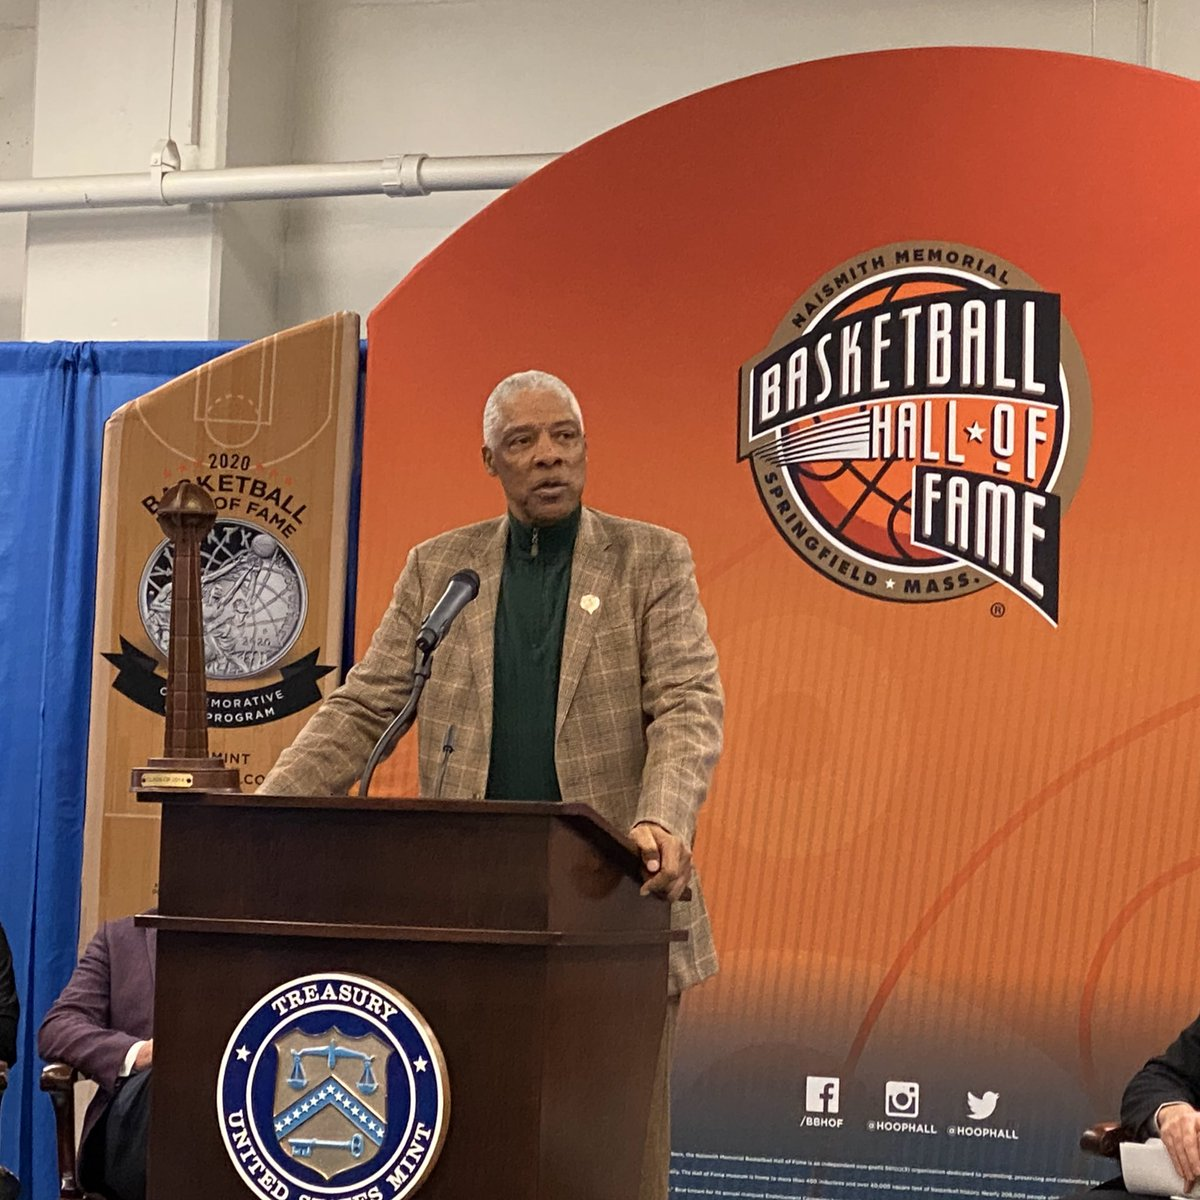 United States Mint hosted members and supporters of the Naismith Memorial Basketball Hall of Fame today at a ceremonial striking of the 2020 Basketball Hall of Fame Silver Dollar coin.